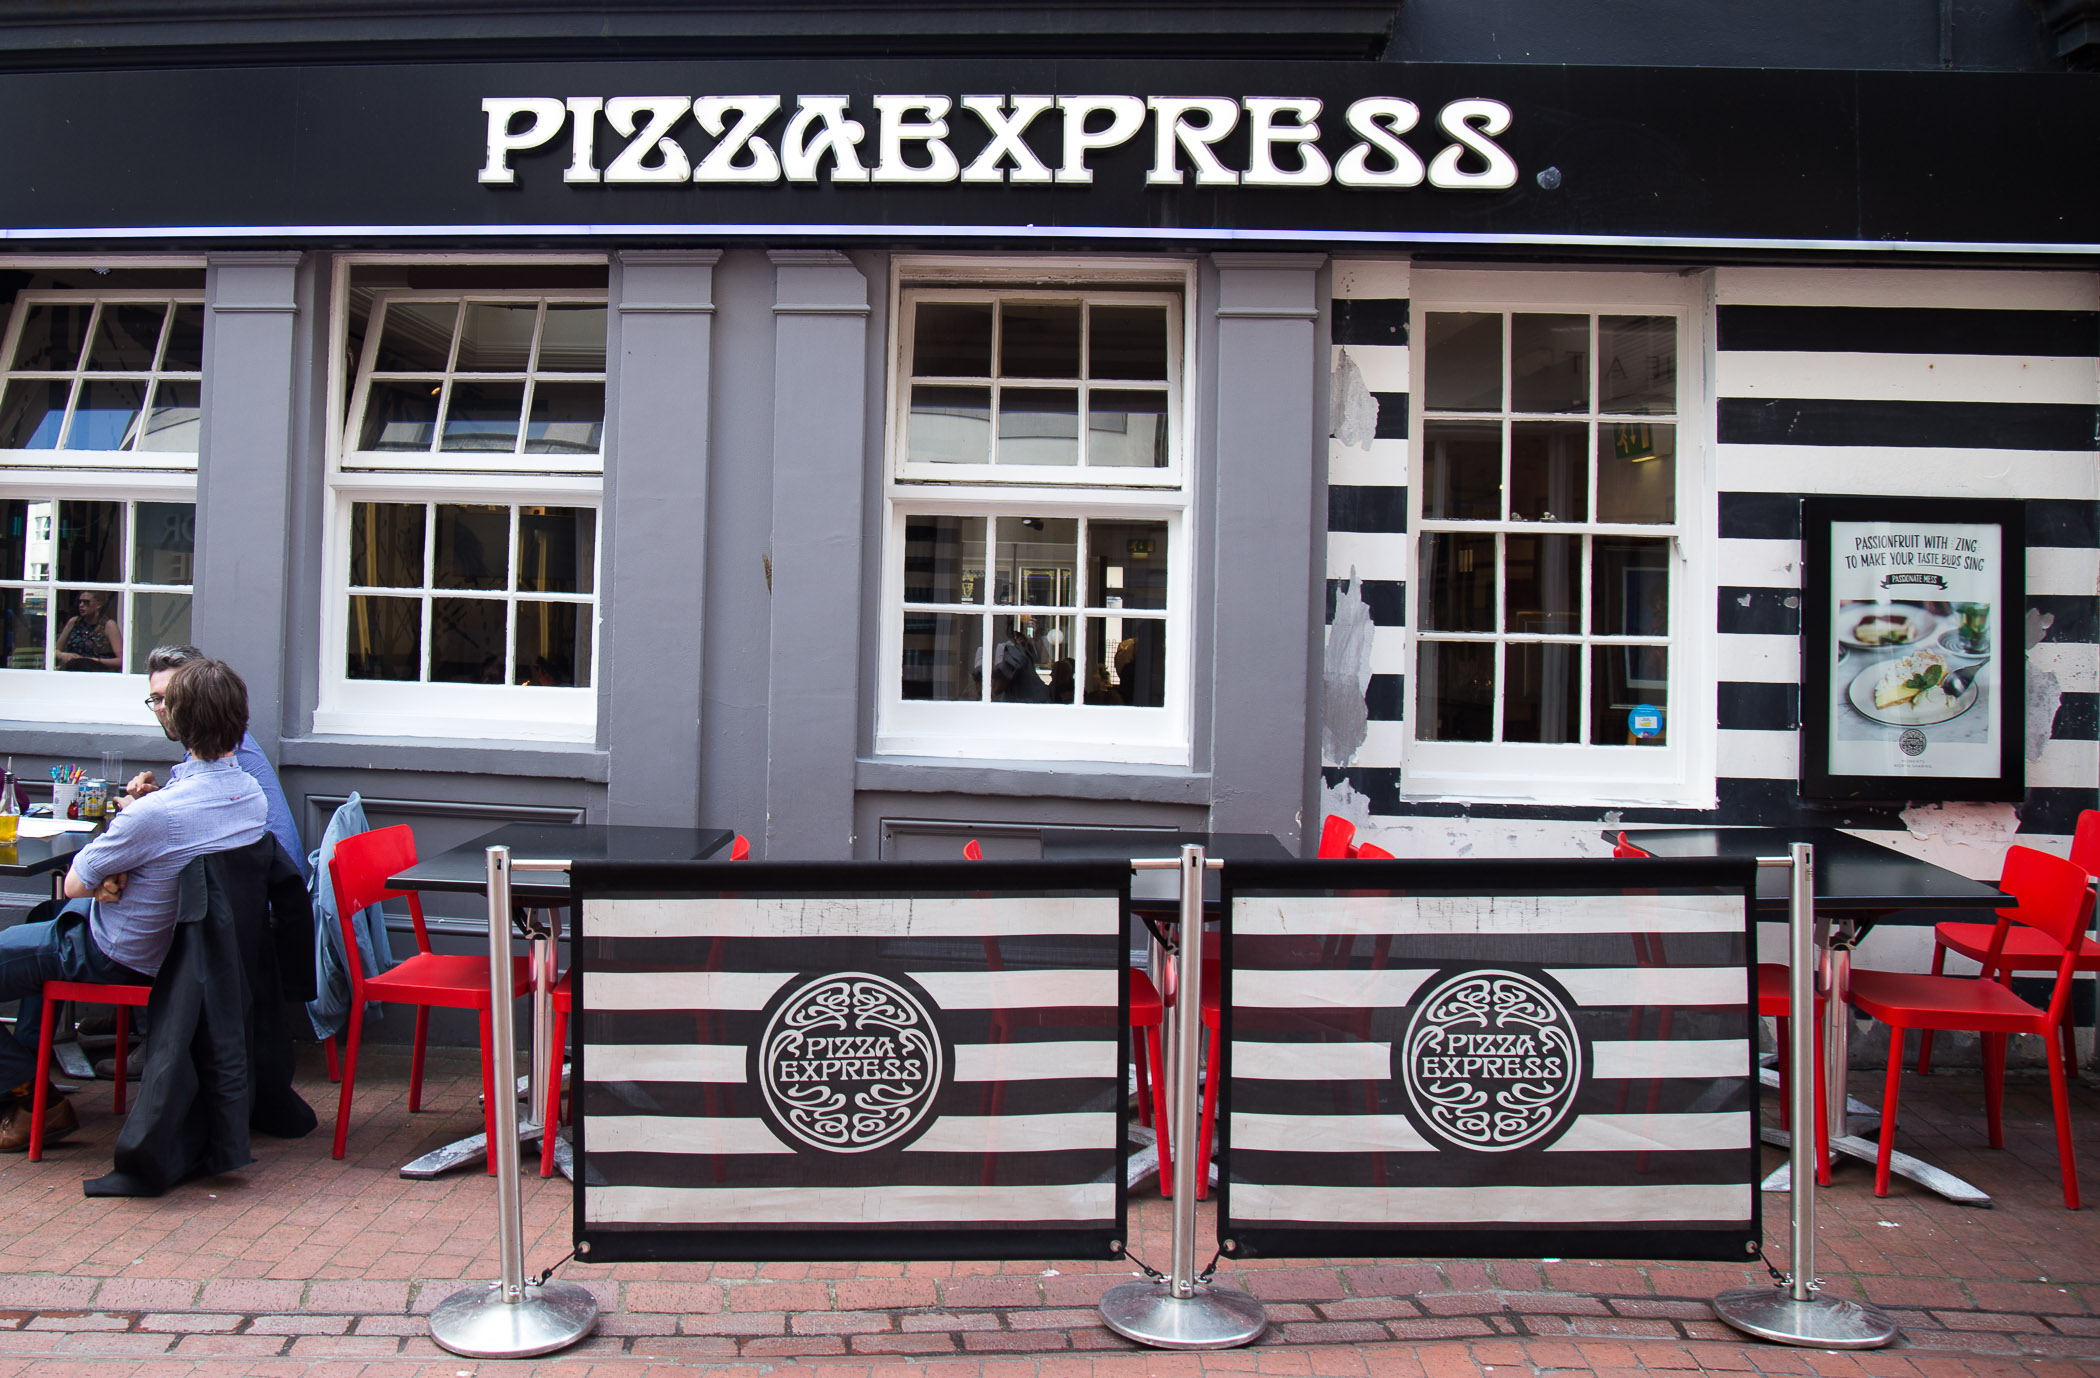 Pizza Express Brighton